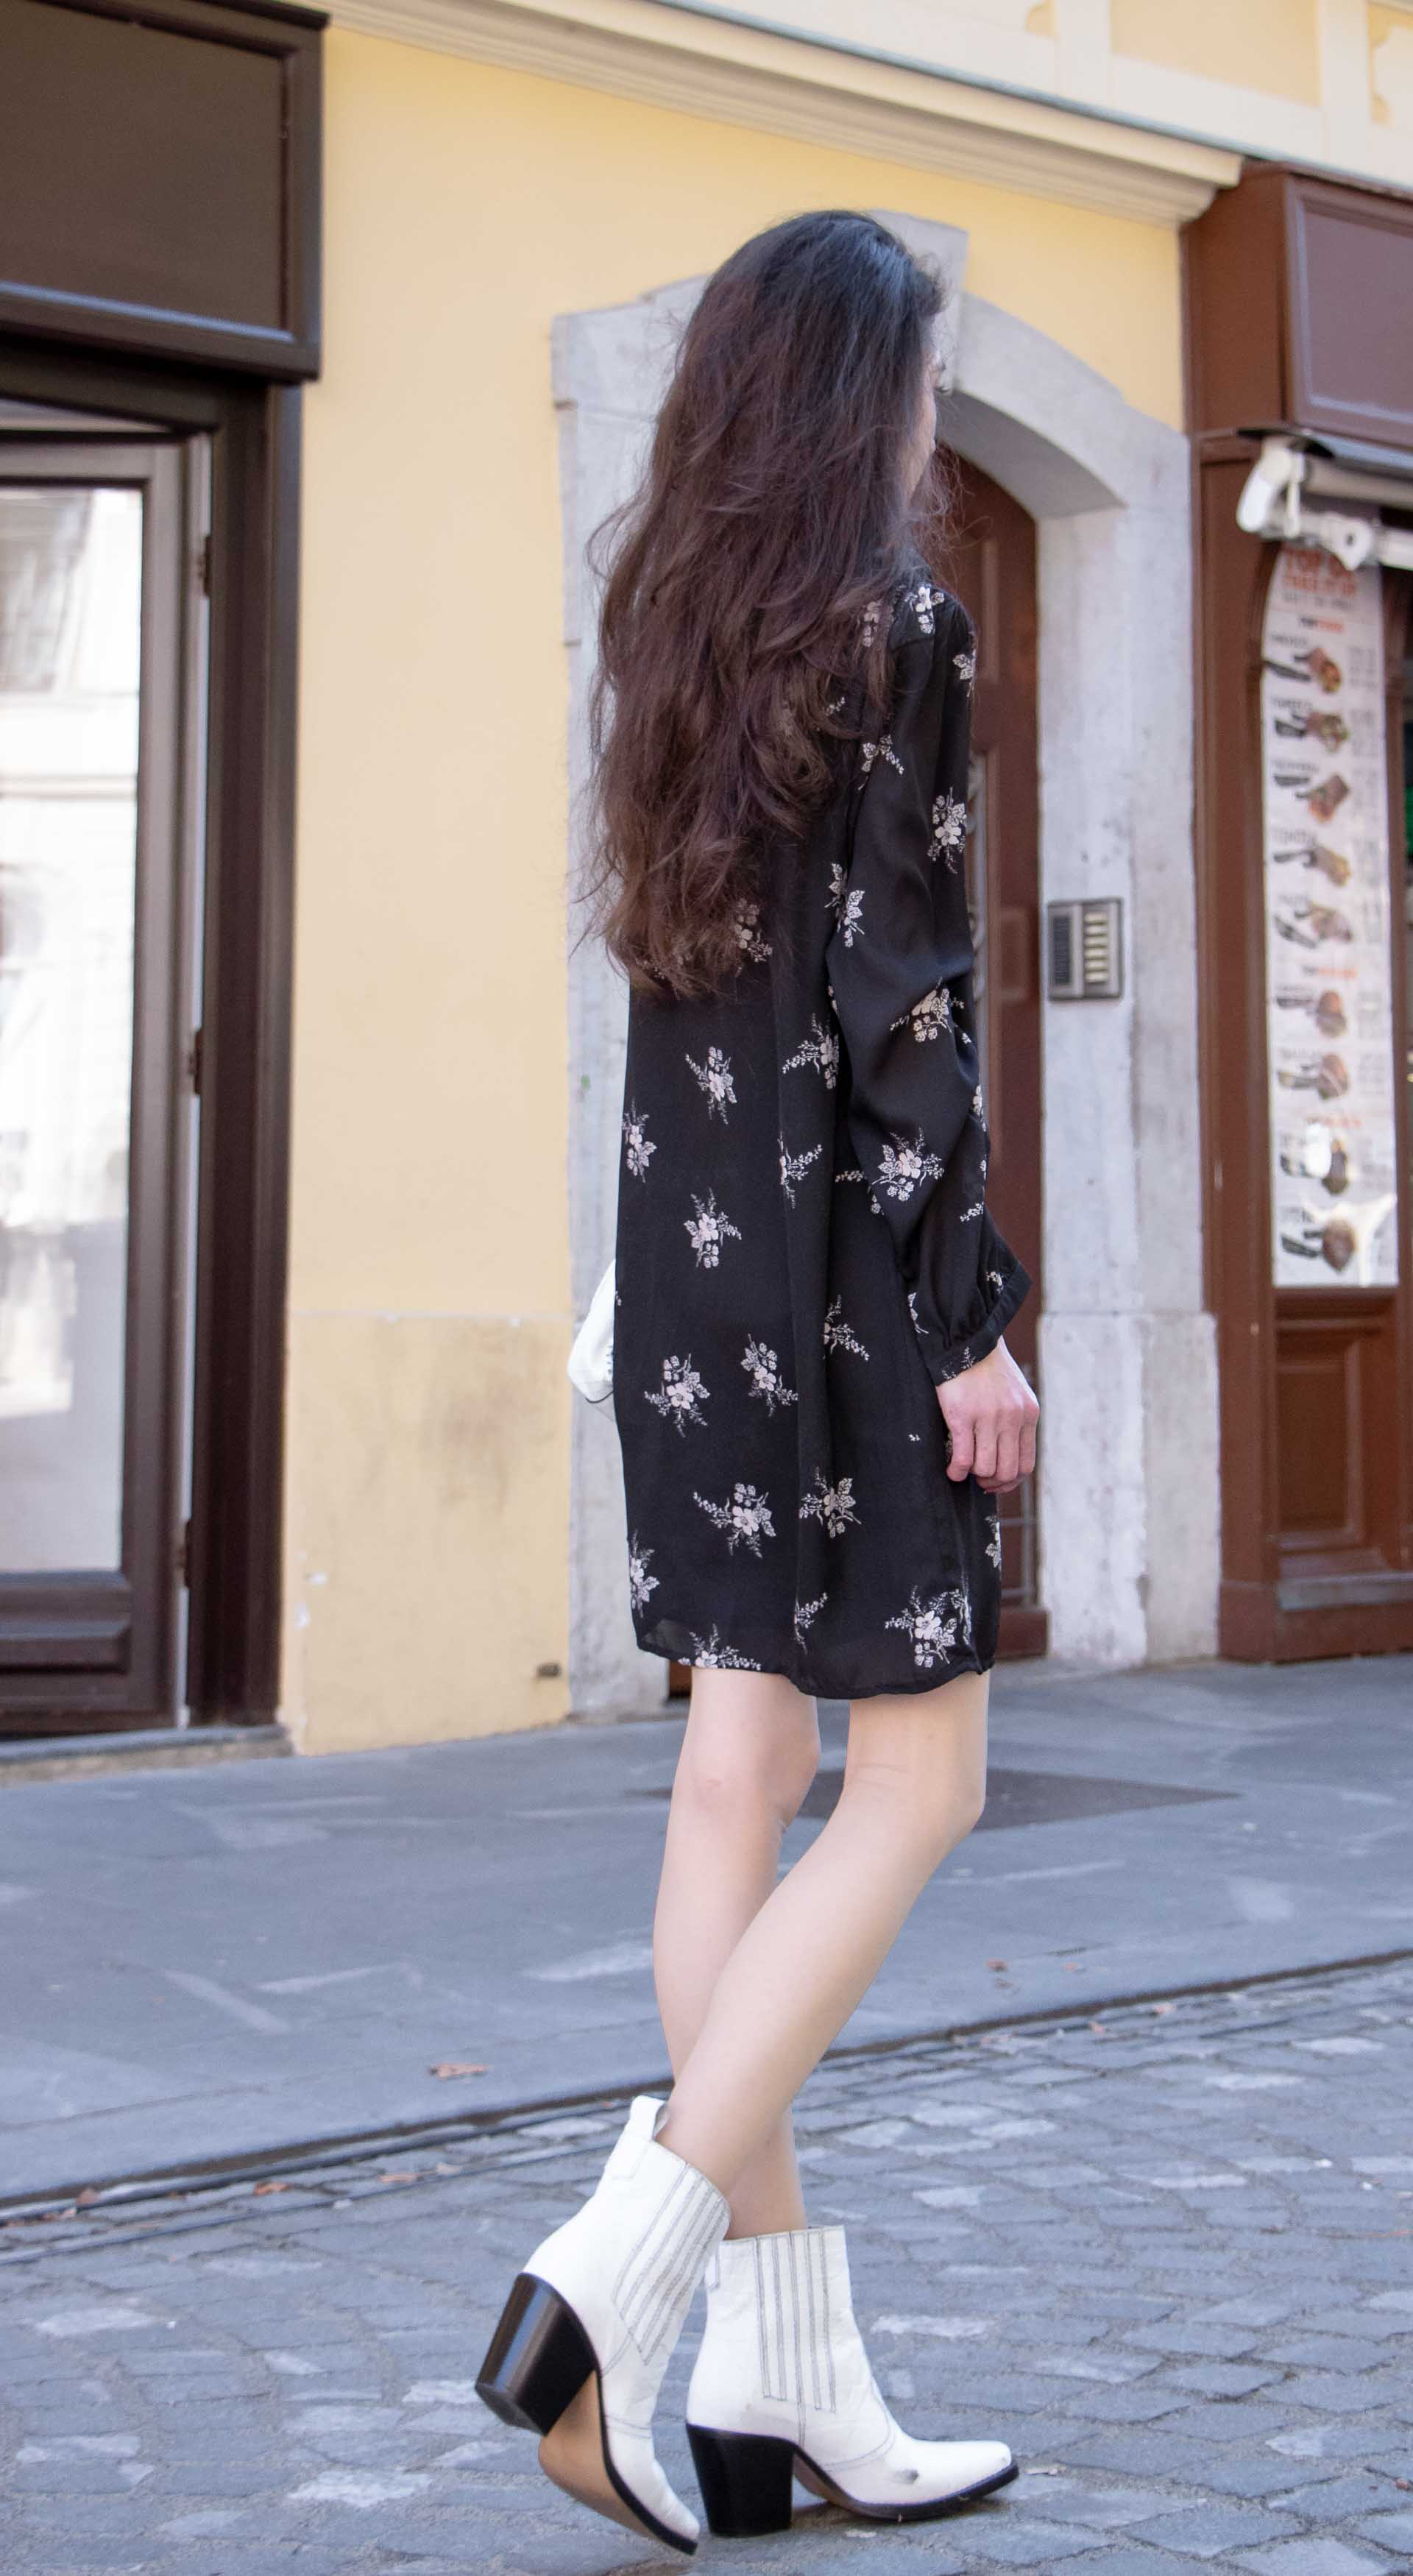 Beautiful Slovenian Fashion Blogger Veronika Lipar of Brunette from Wall wearing dark floral button down dress with white Ganni cowboy boots, white chain shoulder bag in autumn on the street in Ljubljana